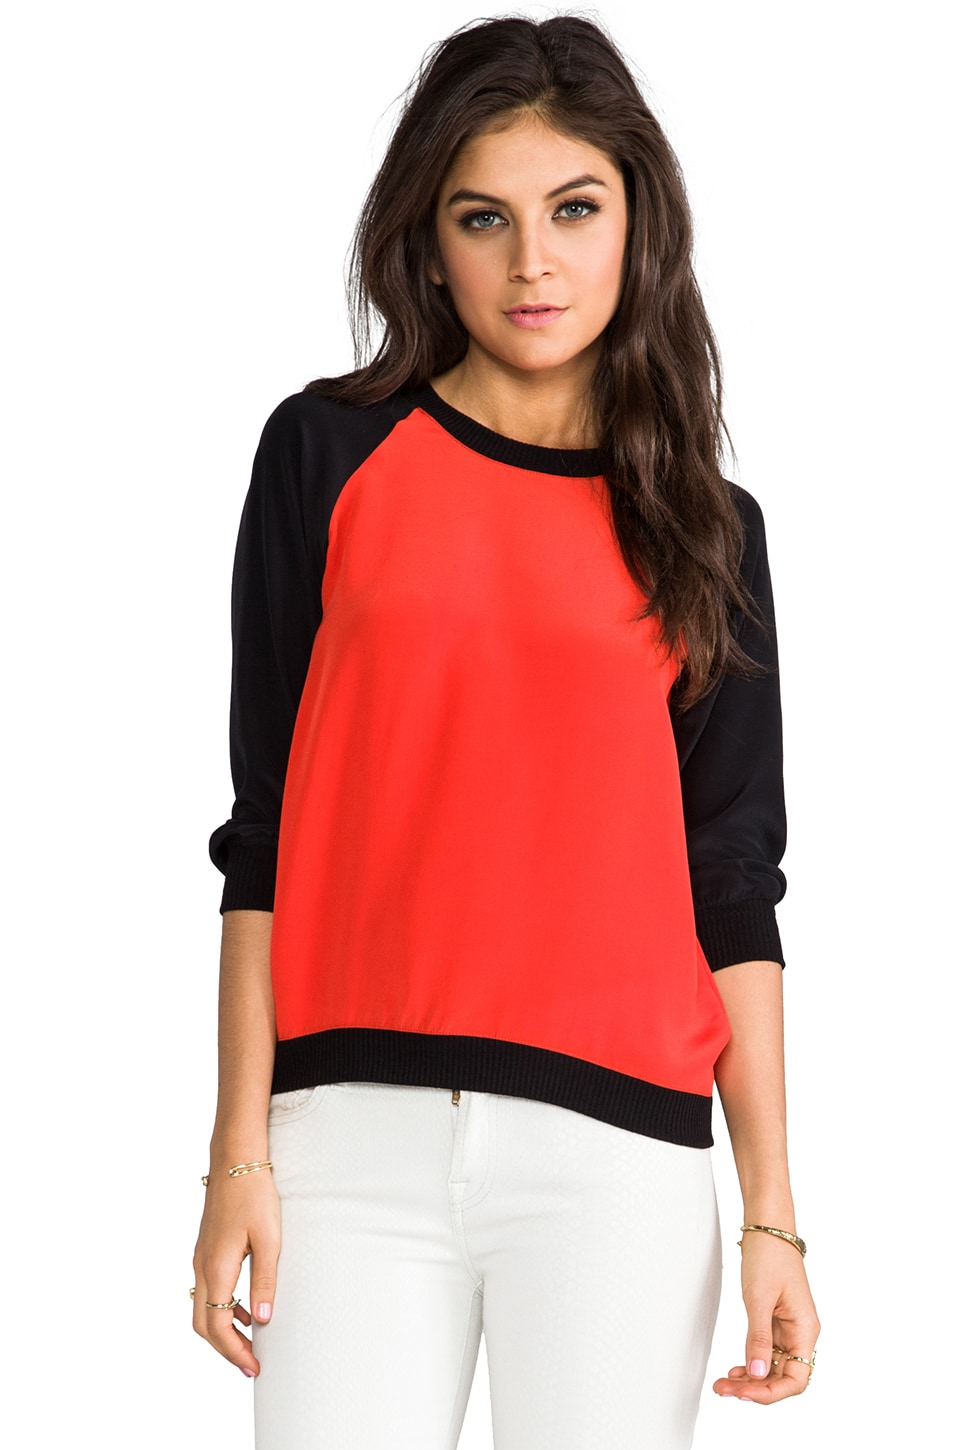 SJOBECK Lombard Silk Sweatshirt in Orange/Black